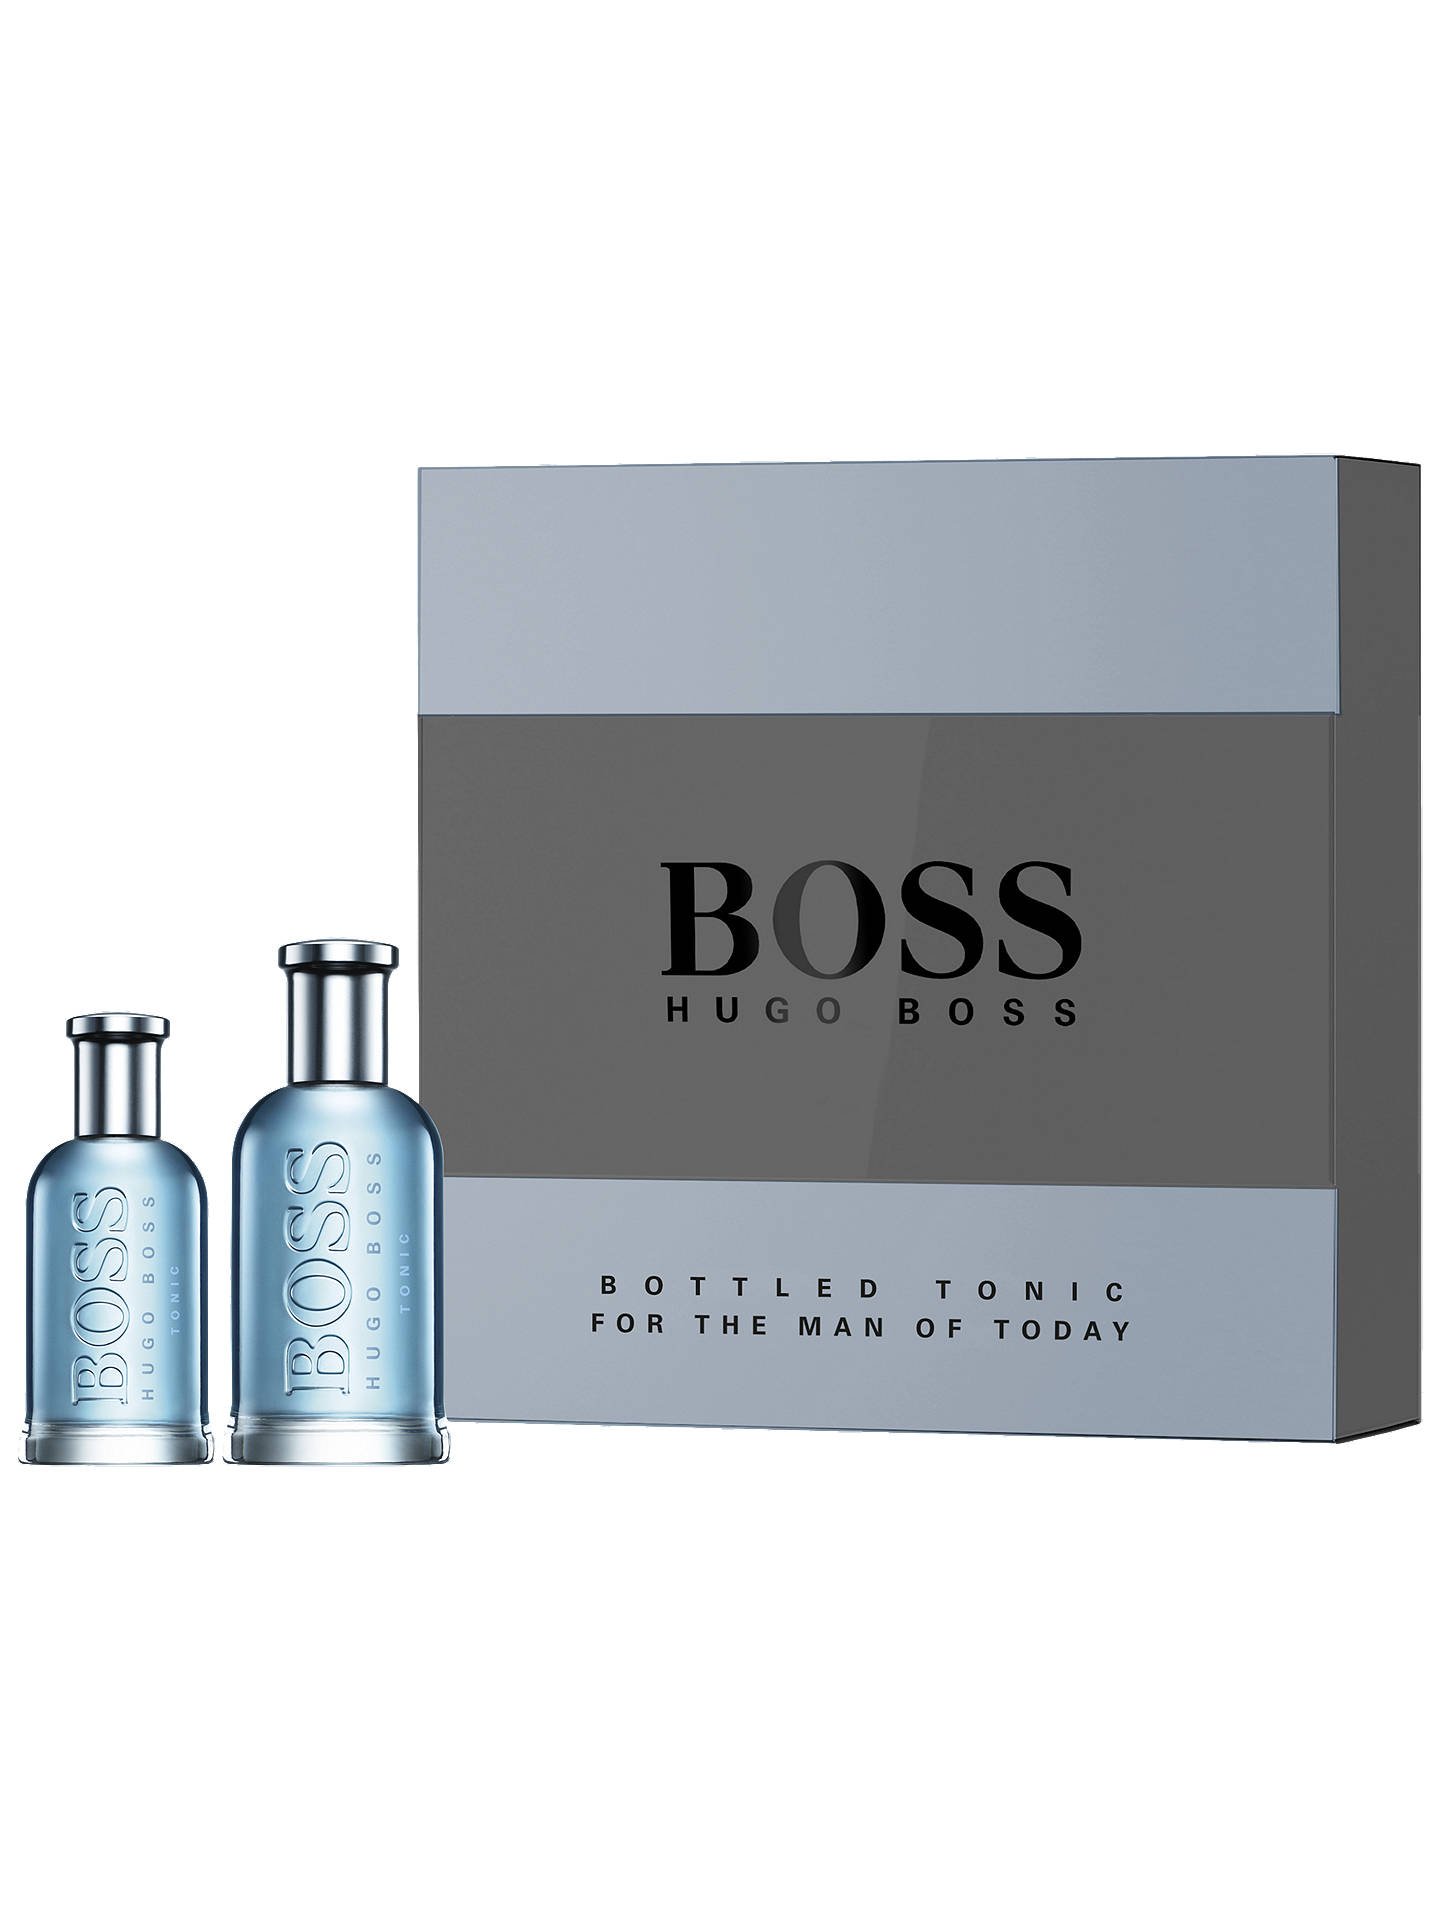 12e71c7615 Buy HUGO BOSS BOSS Bottled Tonic 100ml Eau de Toilette Fragrance Gift Set  Online at johnlewis